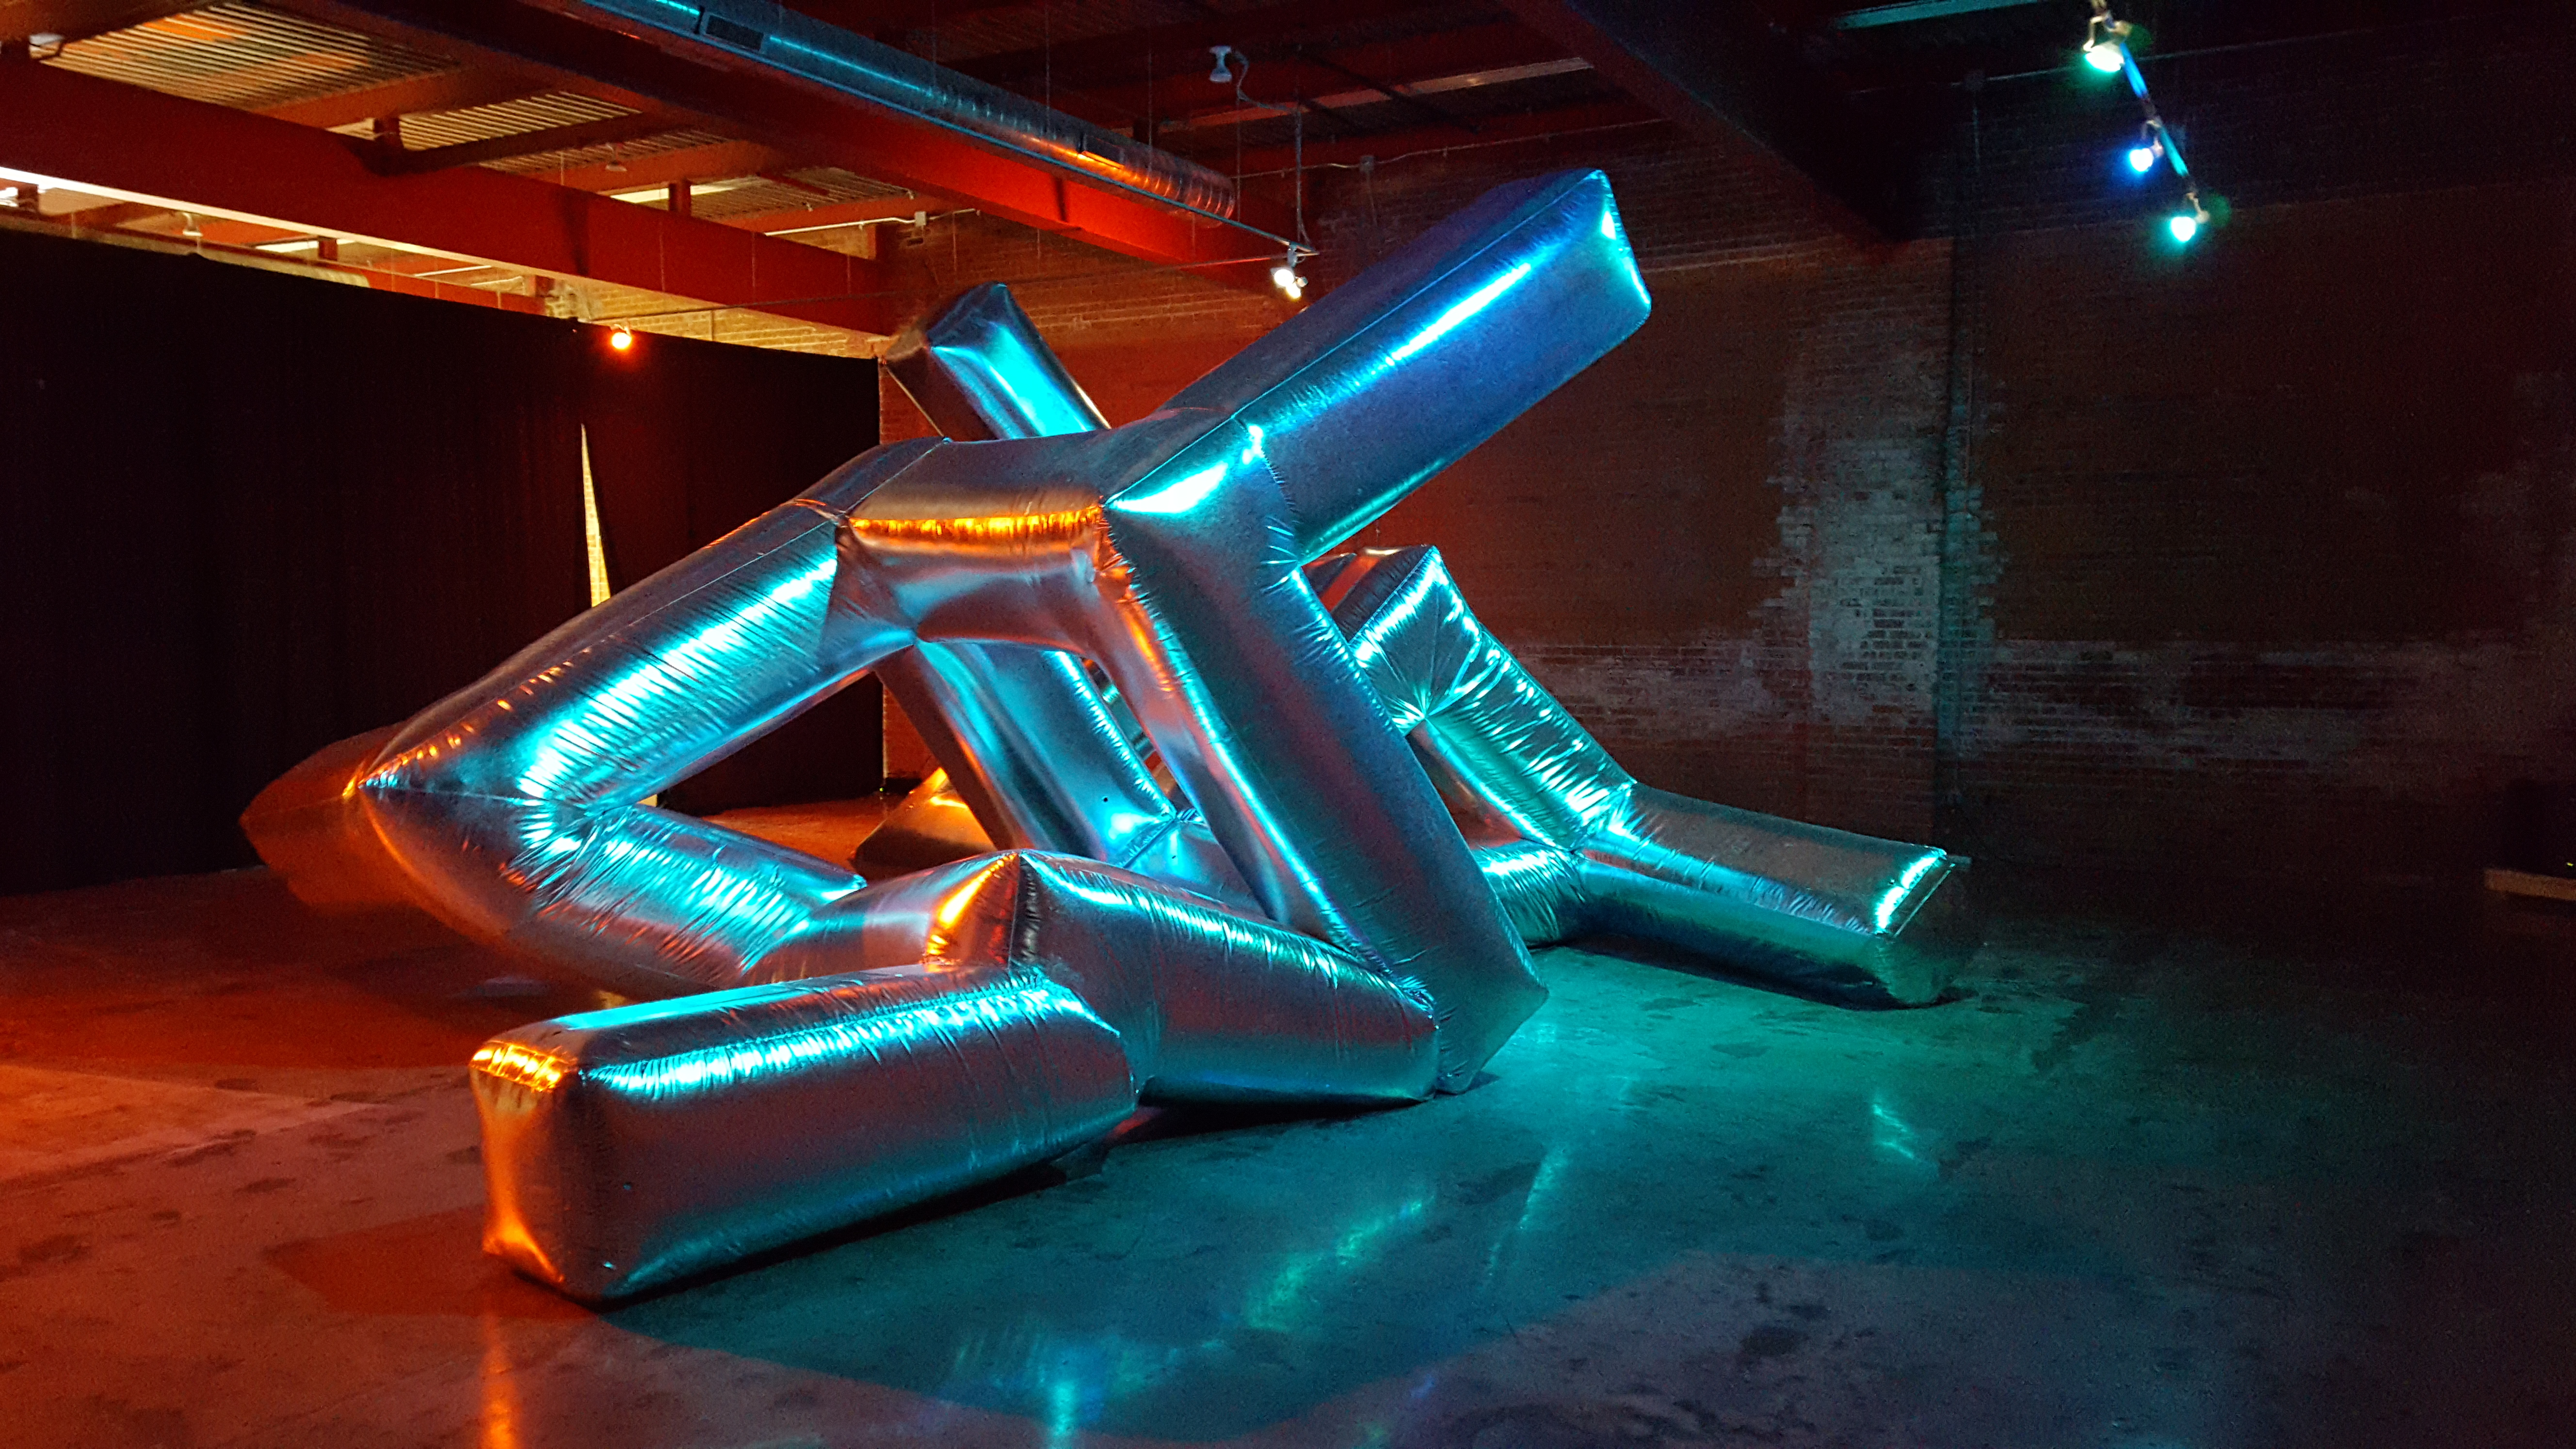 """A shiny, inflated, metallic art piece fills a room. The """"sculpture"""" is geometric, but appears to be stuffed or inflated. Several arms coming off of the piece, which bend at various points. It fills the large loft style space it is photographed in."""